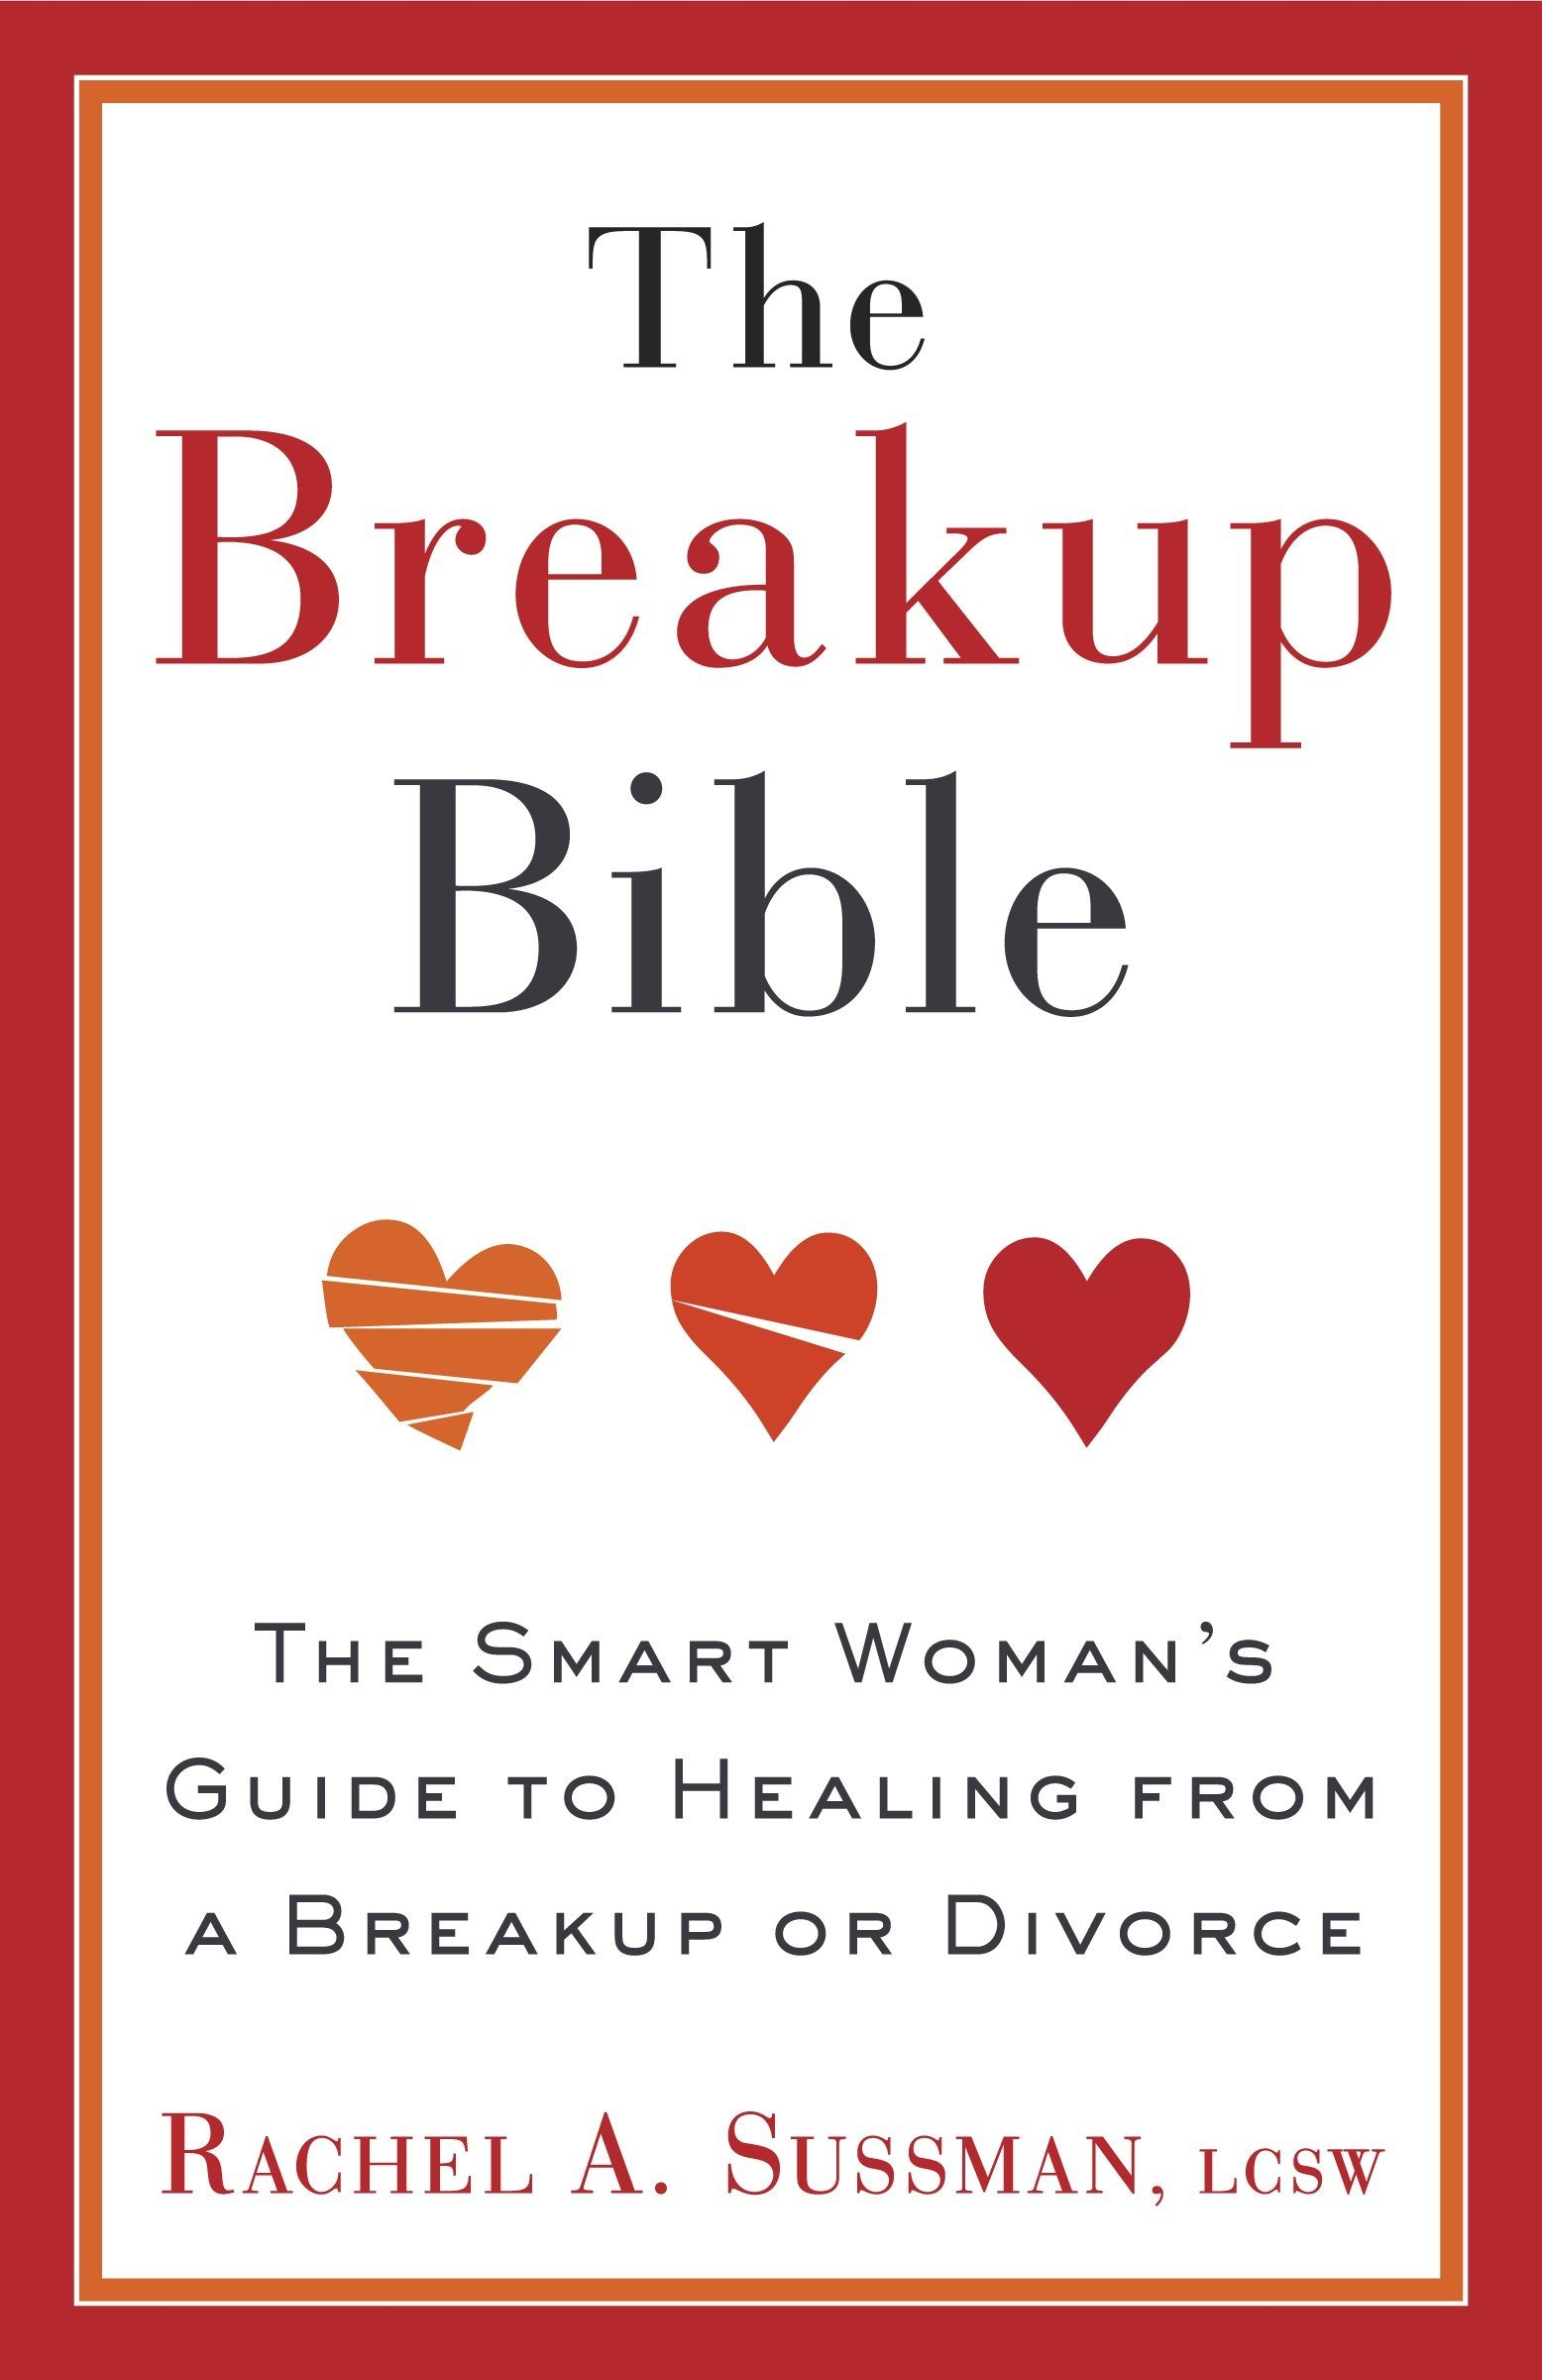 Christian advice on breaking up